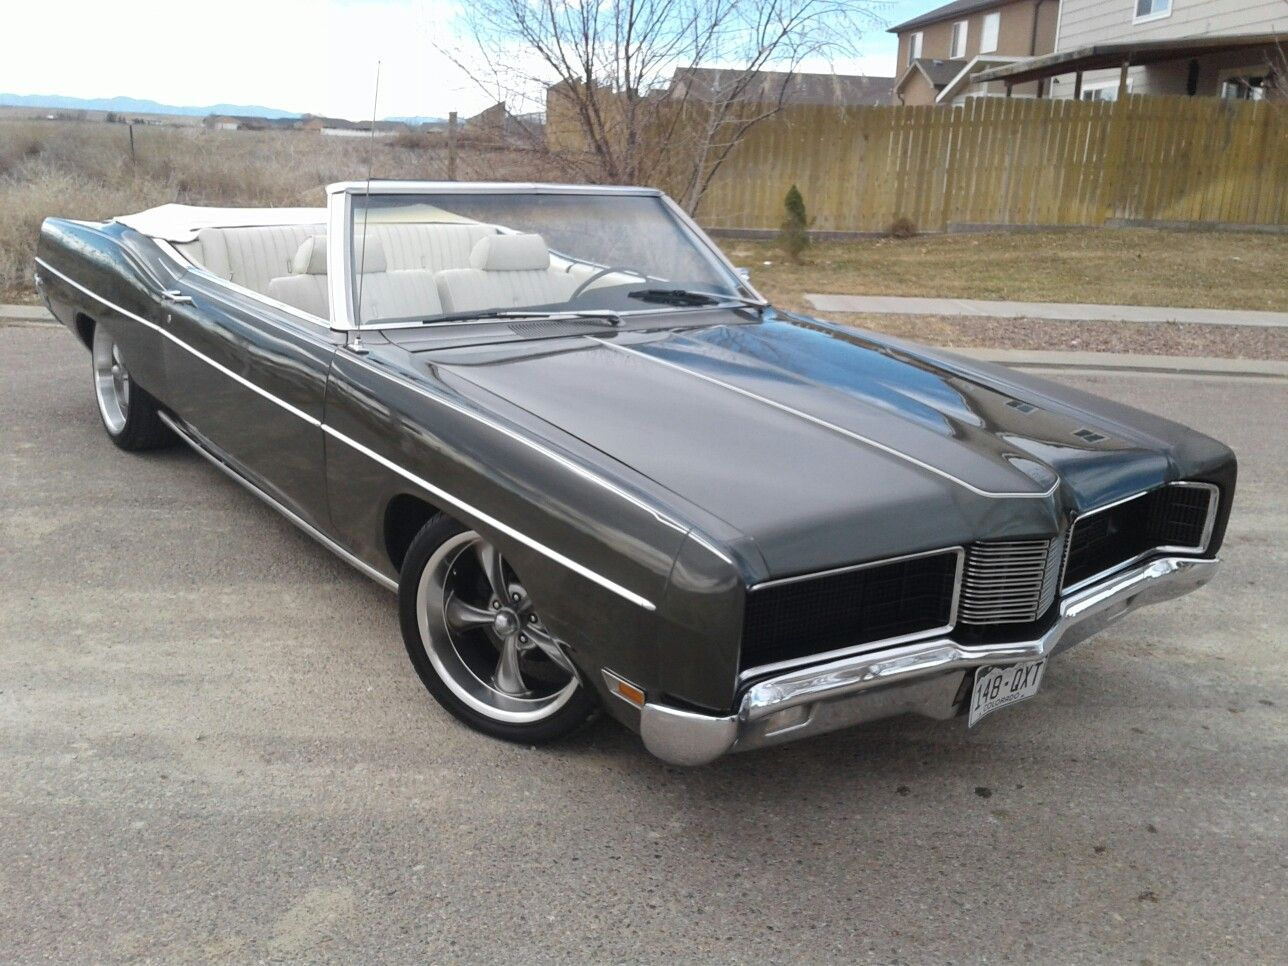 1970 Ford Xl Ford Classic Cars Ford Galaxie Ford Motor